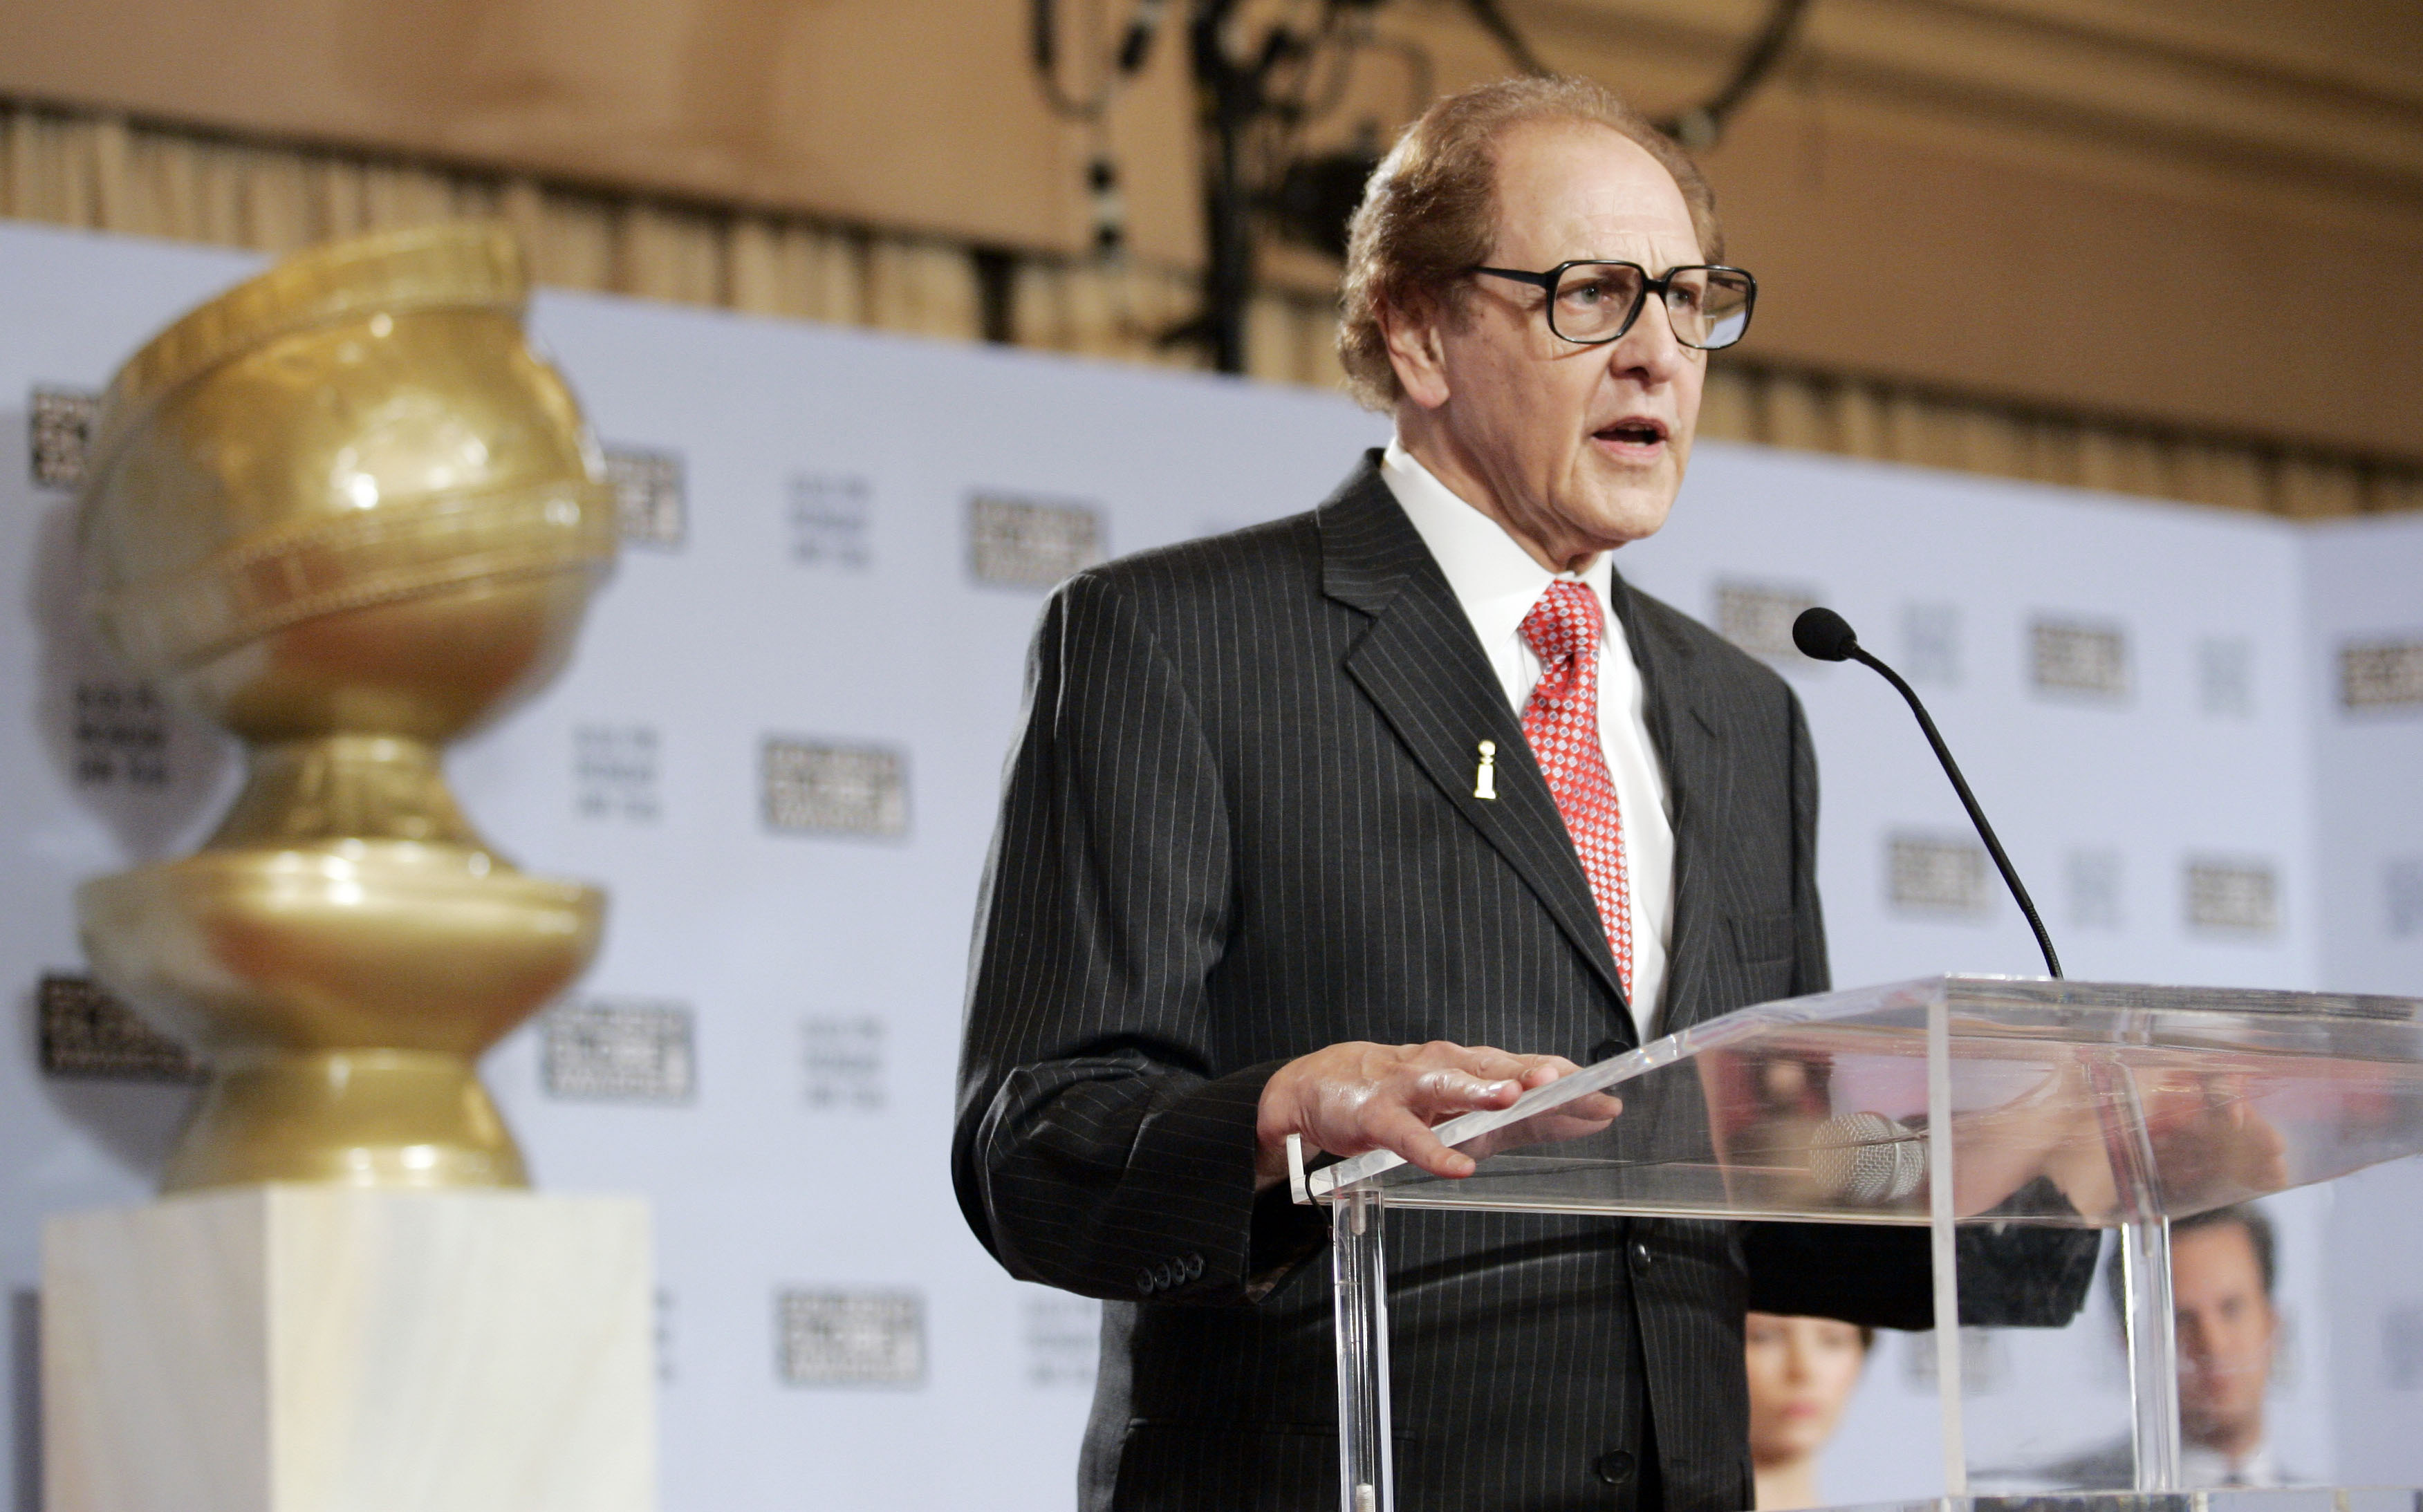 Philip Berk, president of the Hollywood Foreign Press Association, speaks before the nominees for the Golden Globe Awards are announced at the Beverly Hilton in Beverly Hills, California, December 14, 2006.